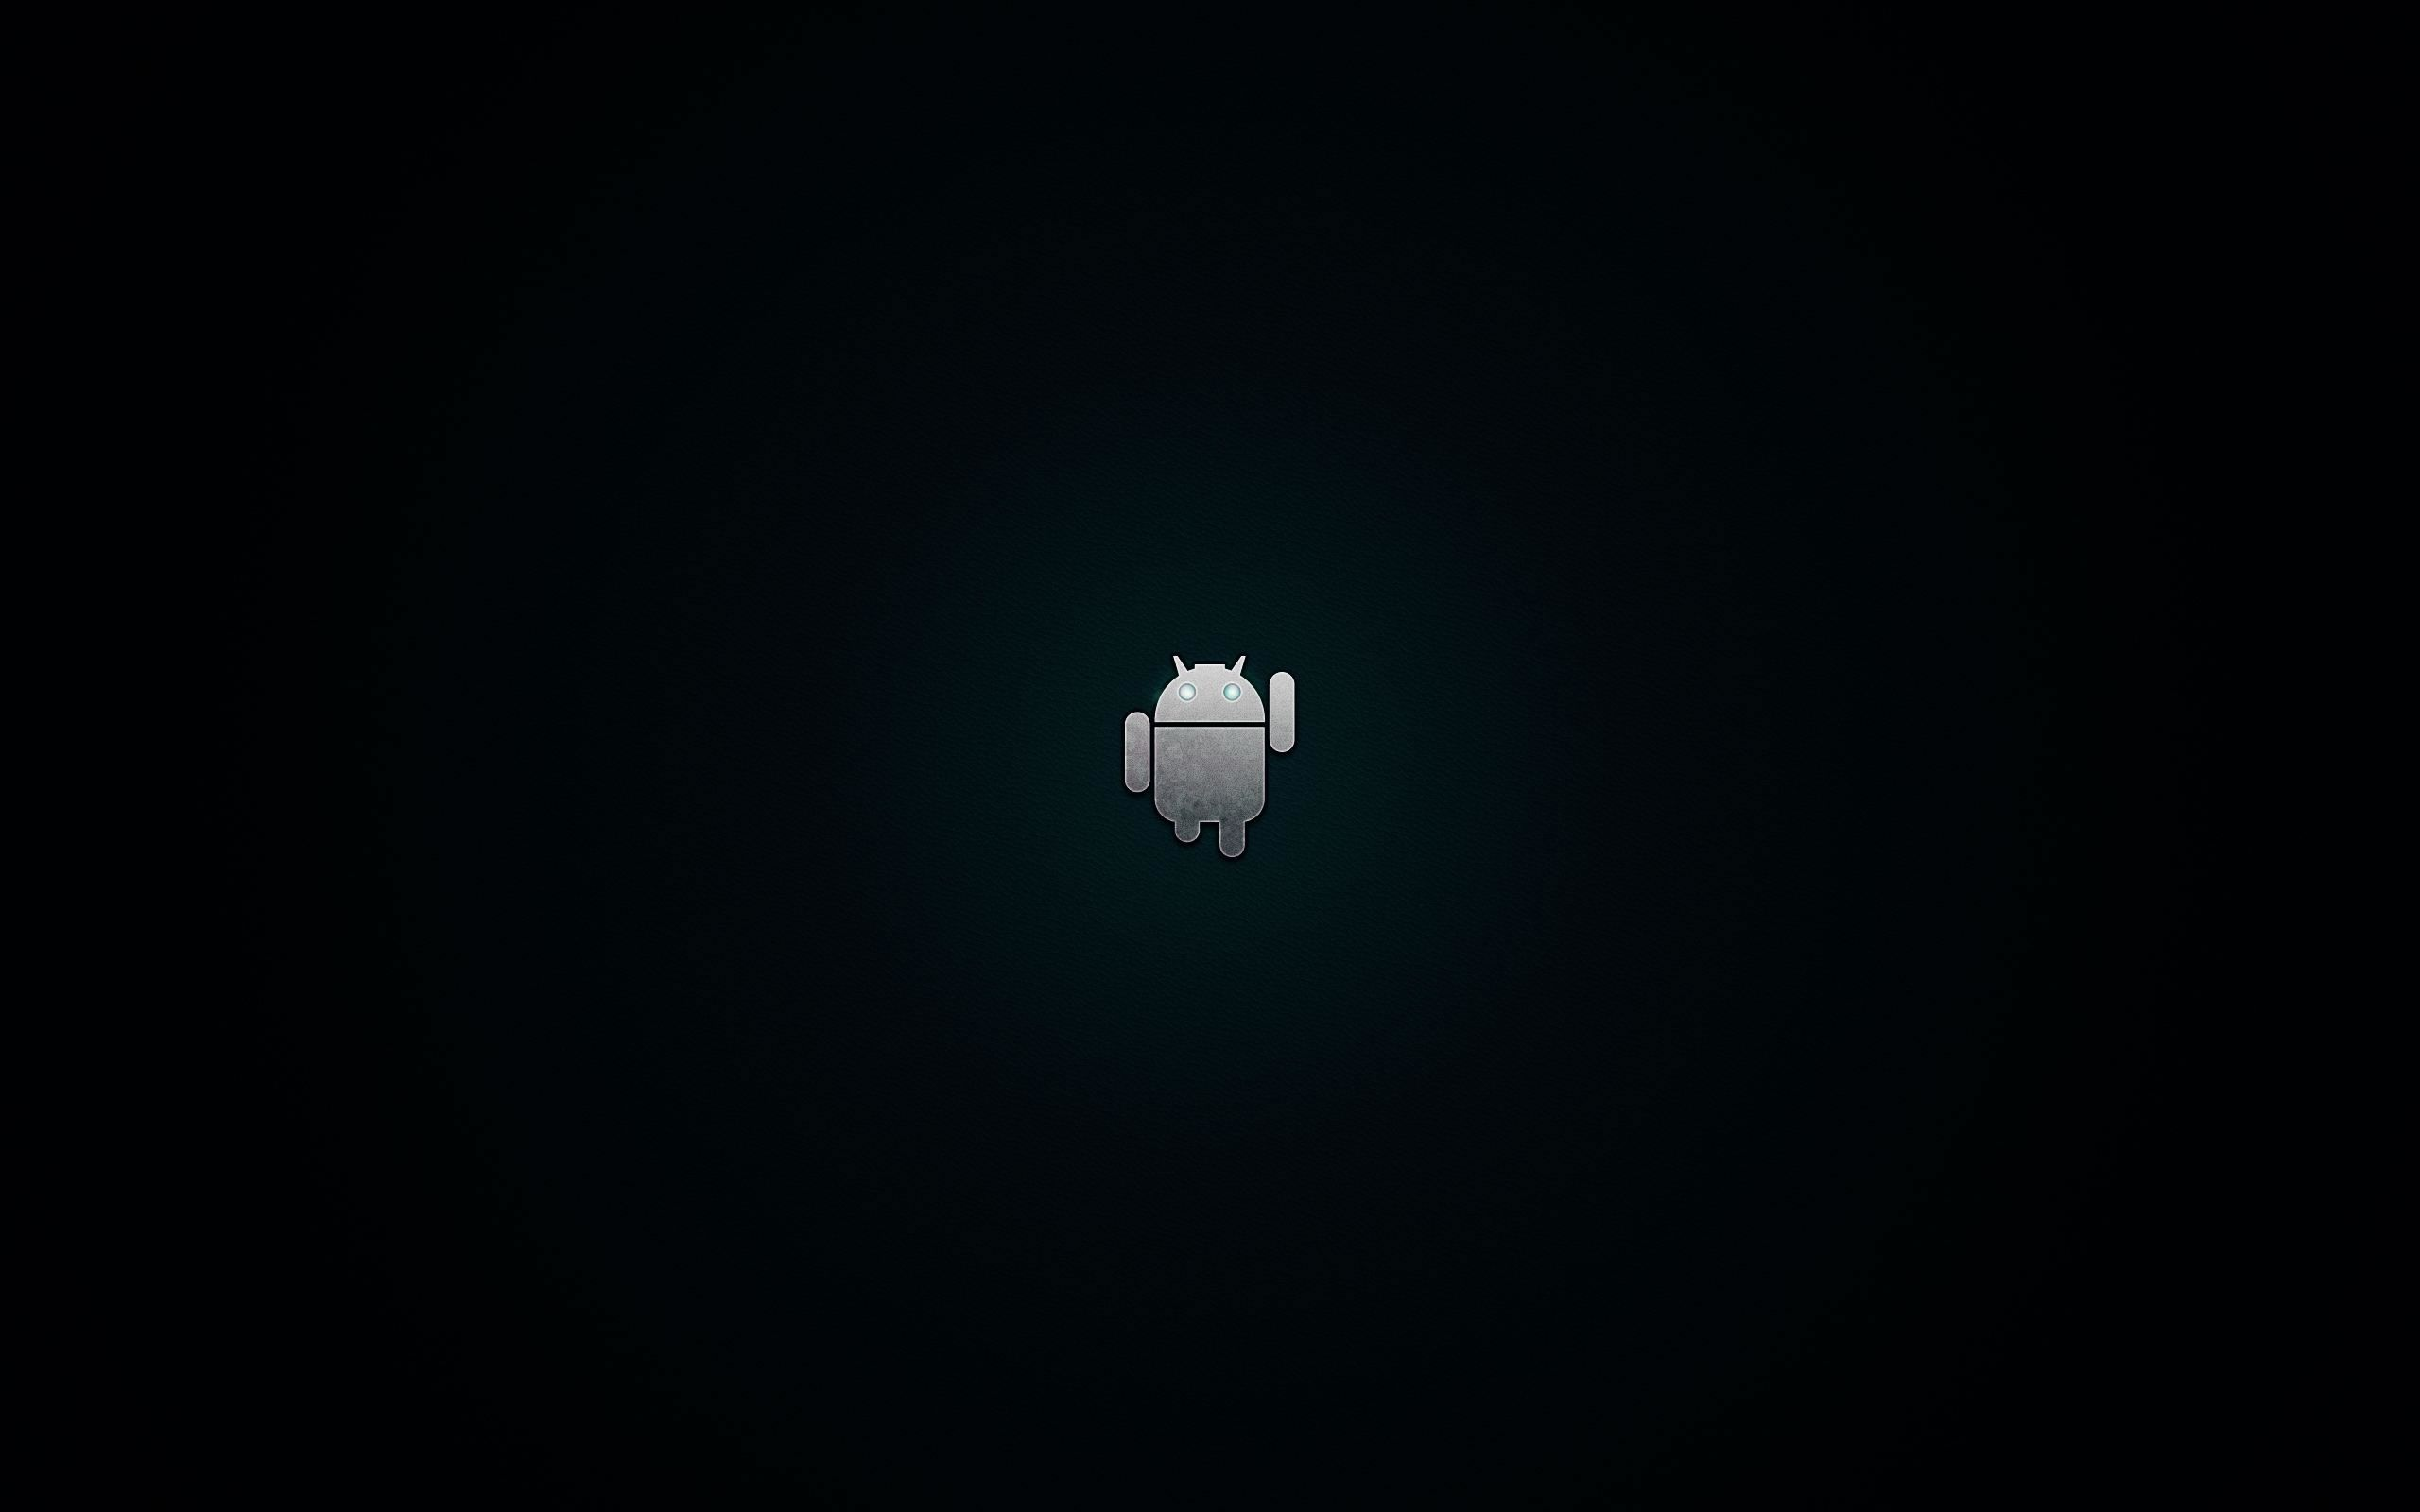 android logo black and white wallpaper Black wallpaper